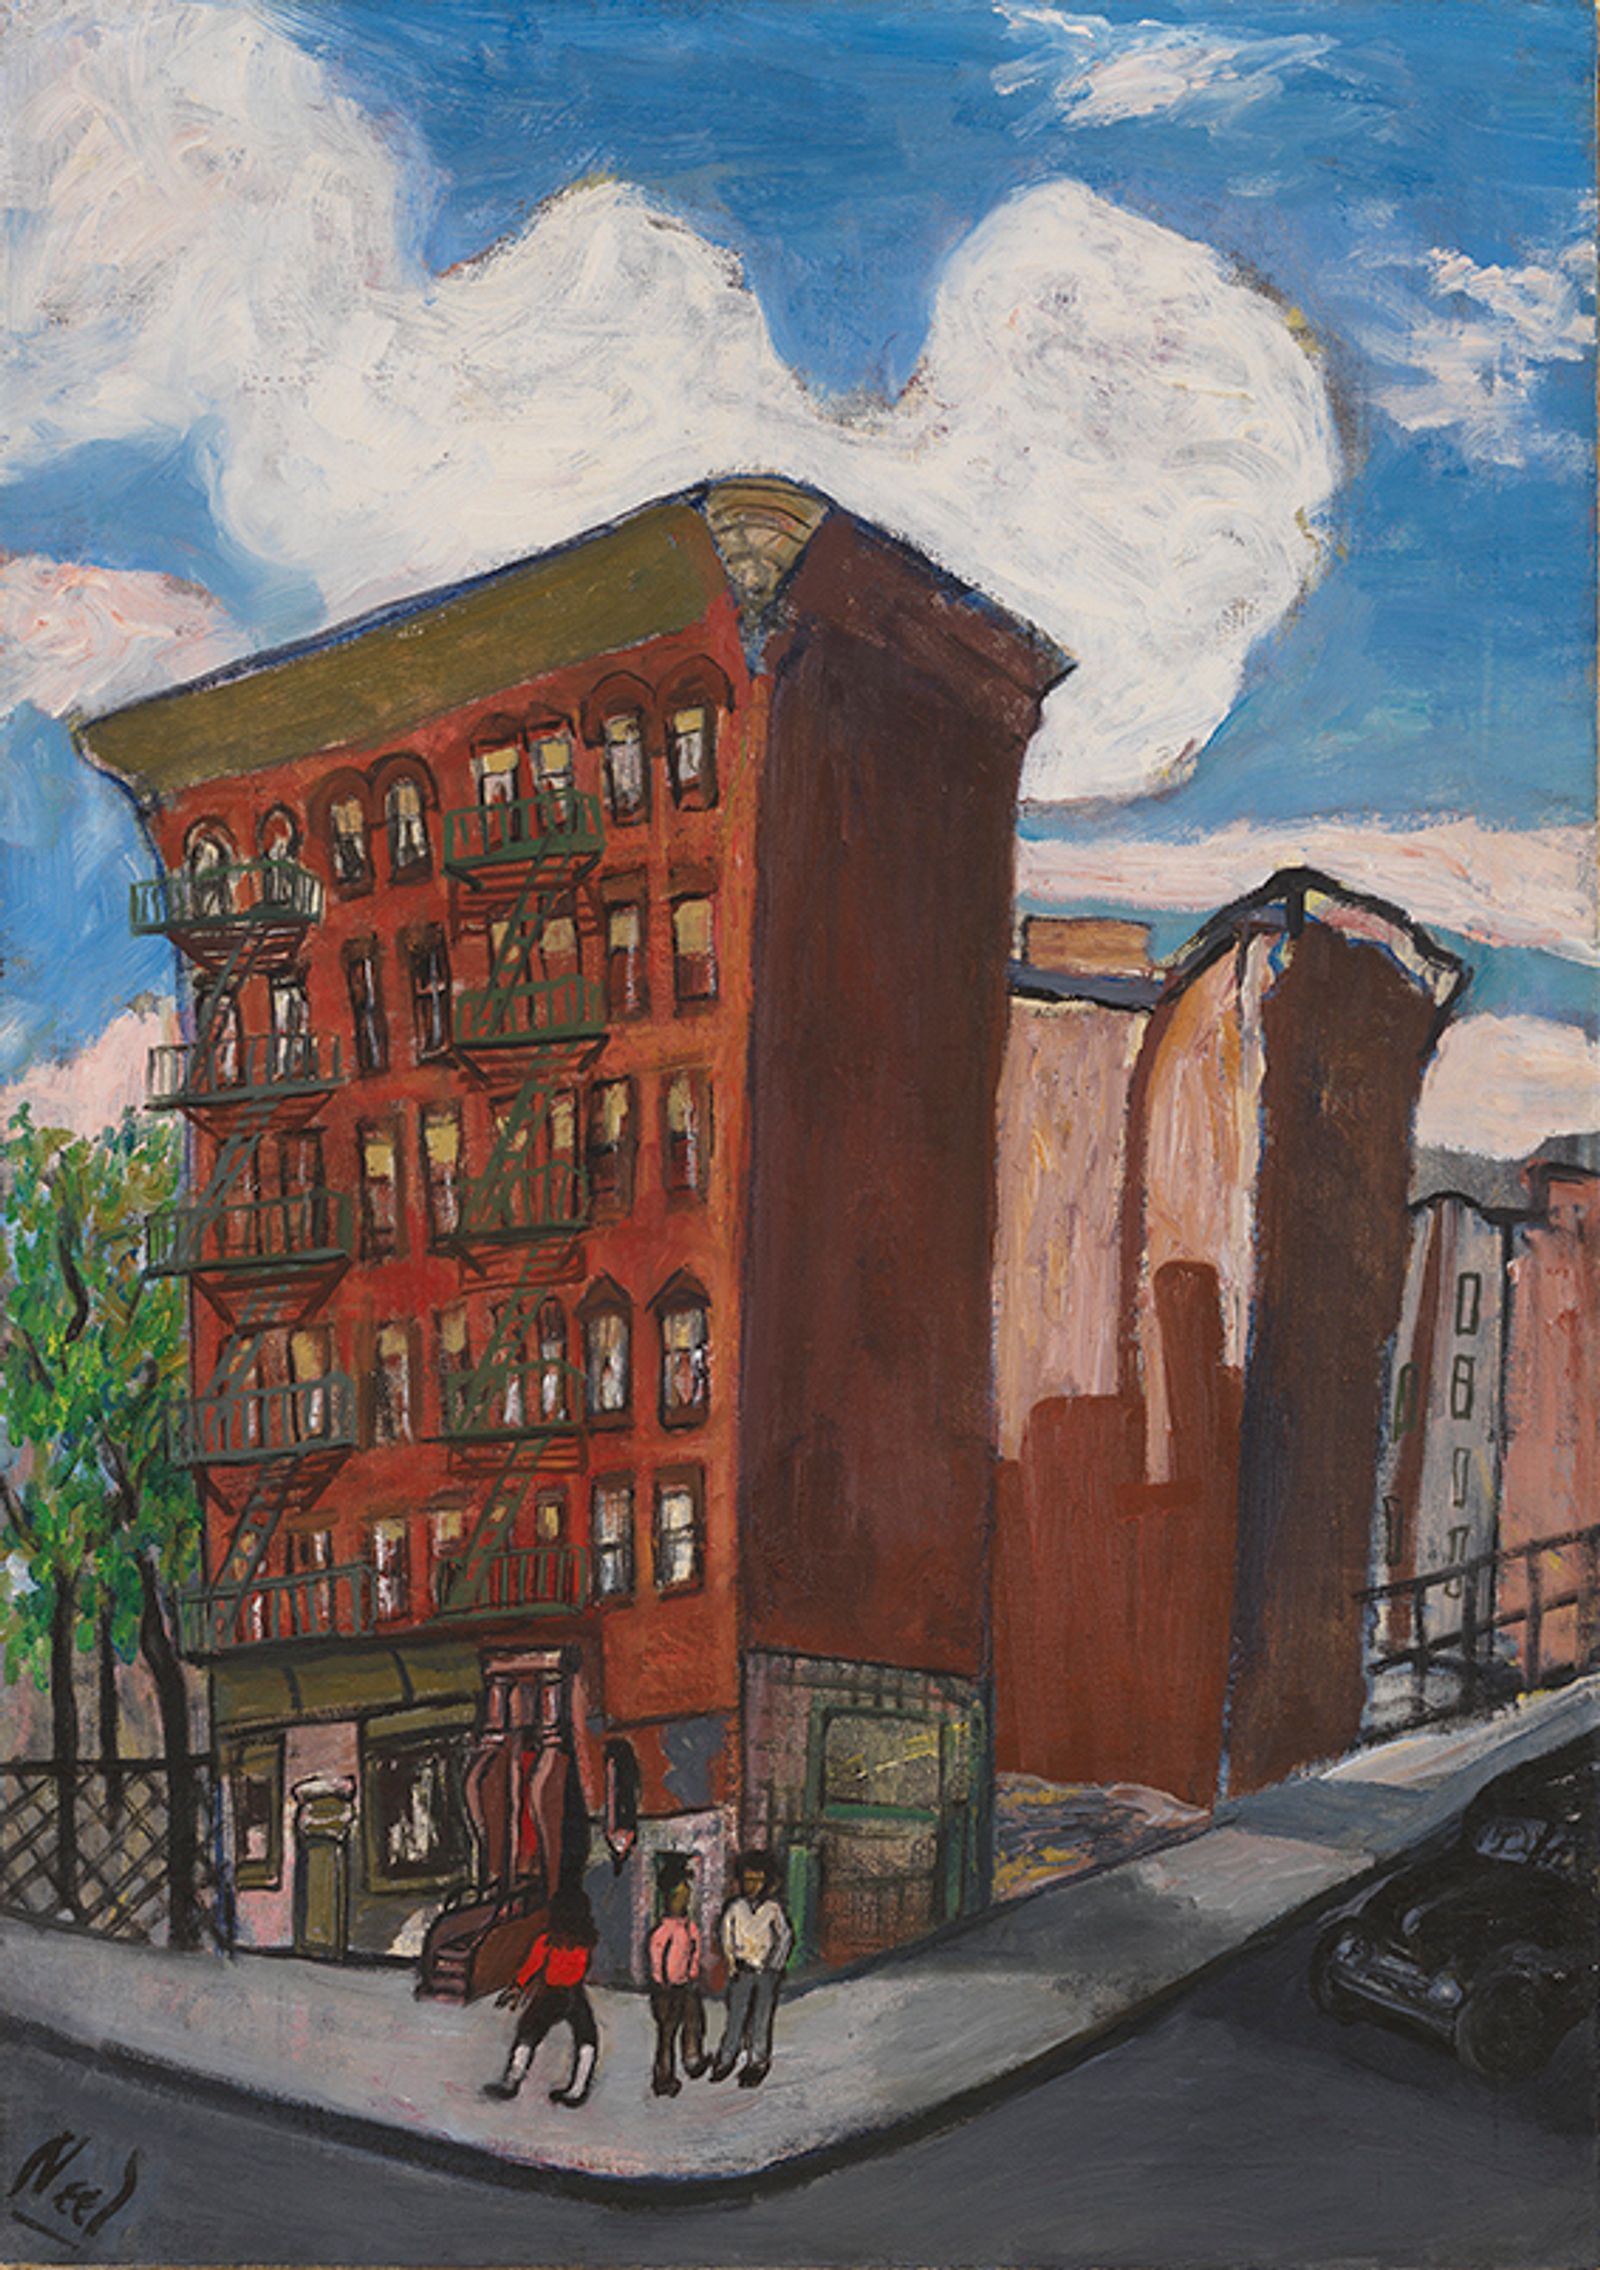 A tenement building on a street corner stretches to the sky on a beautiful, summer day.